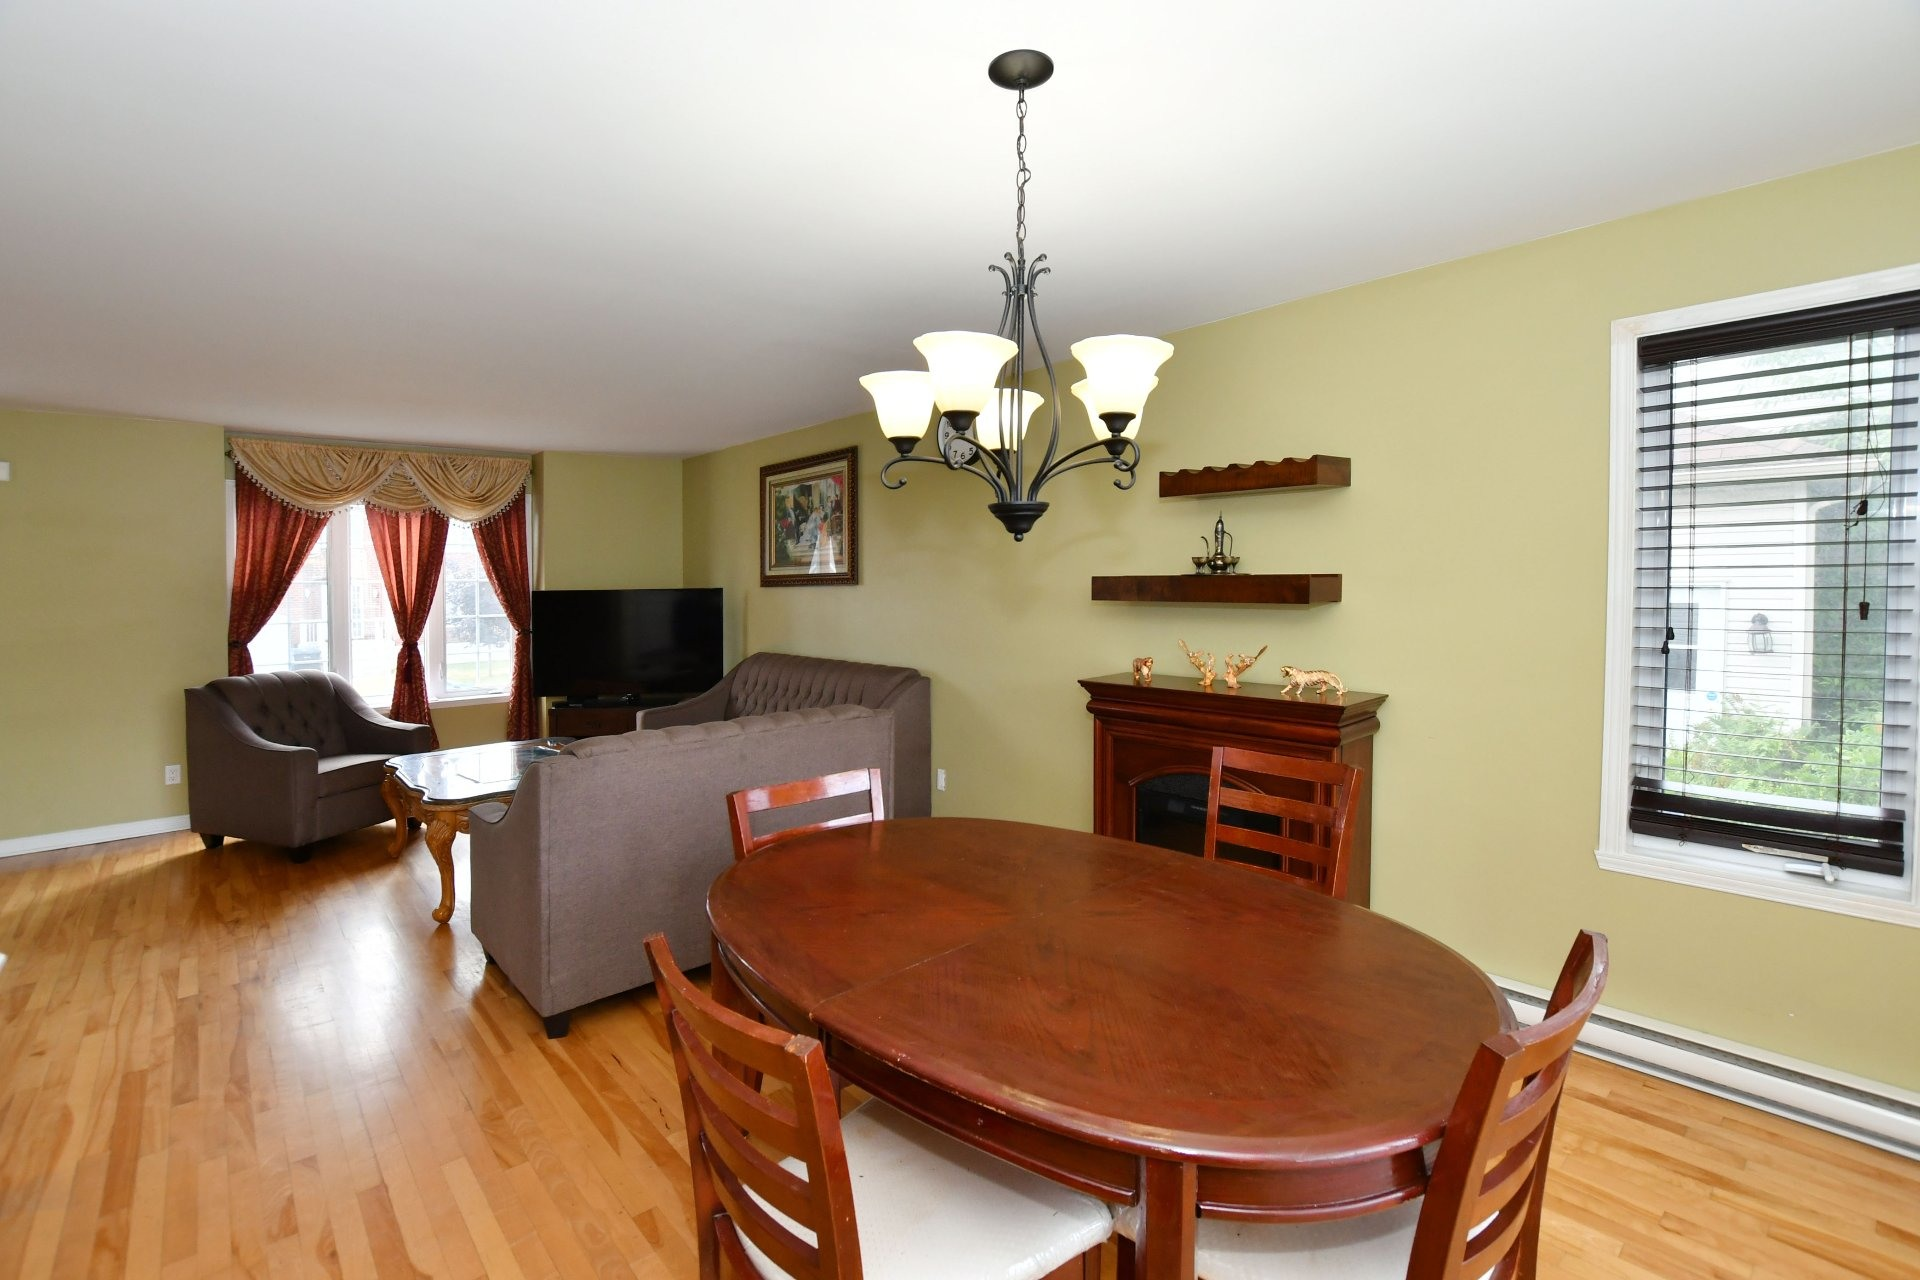 House For sale Vaudreuil-Dorion - 10 rooms